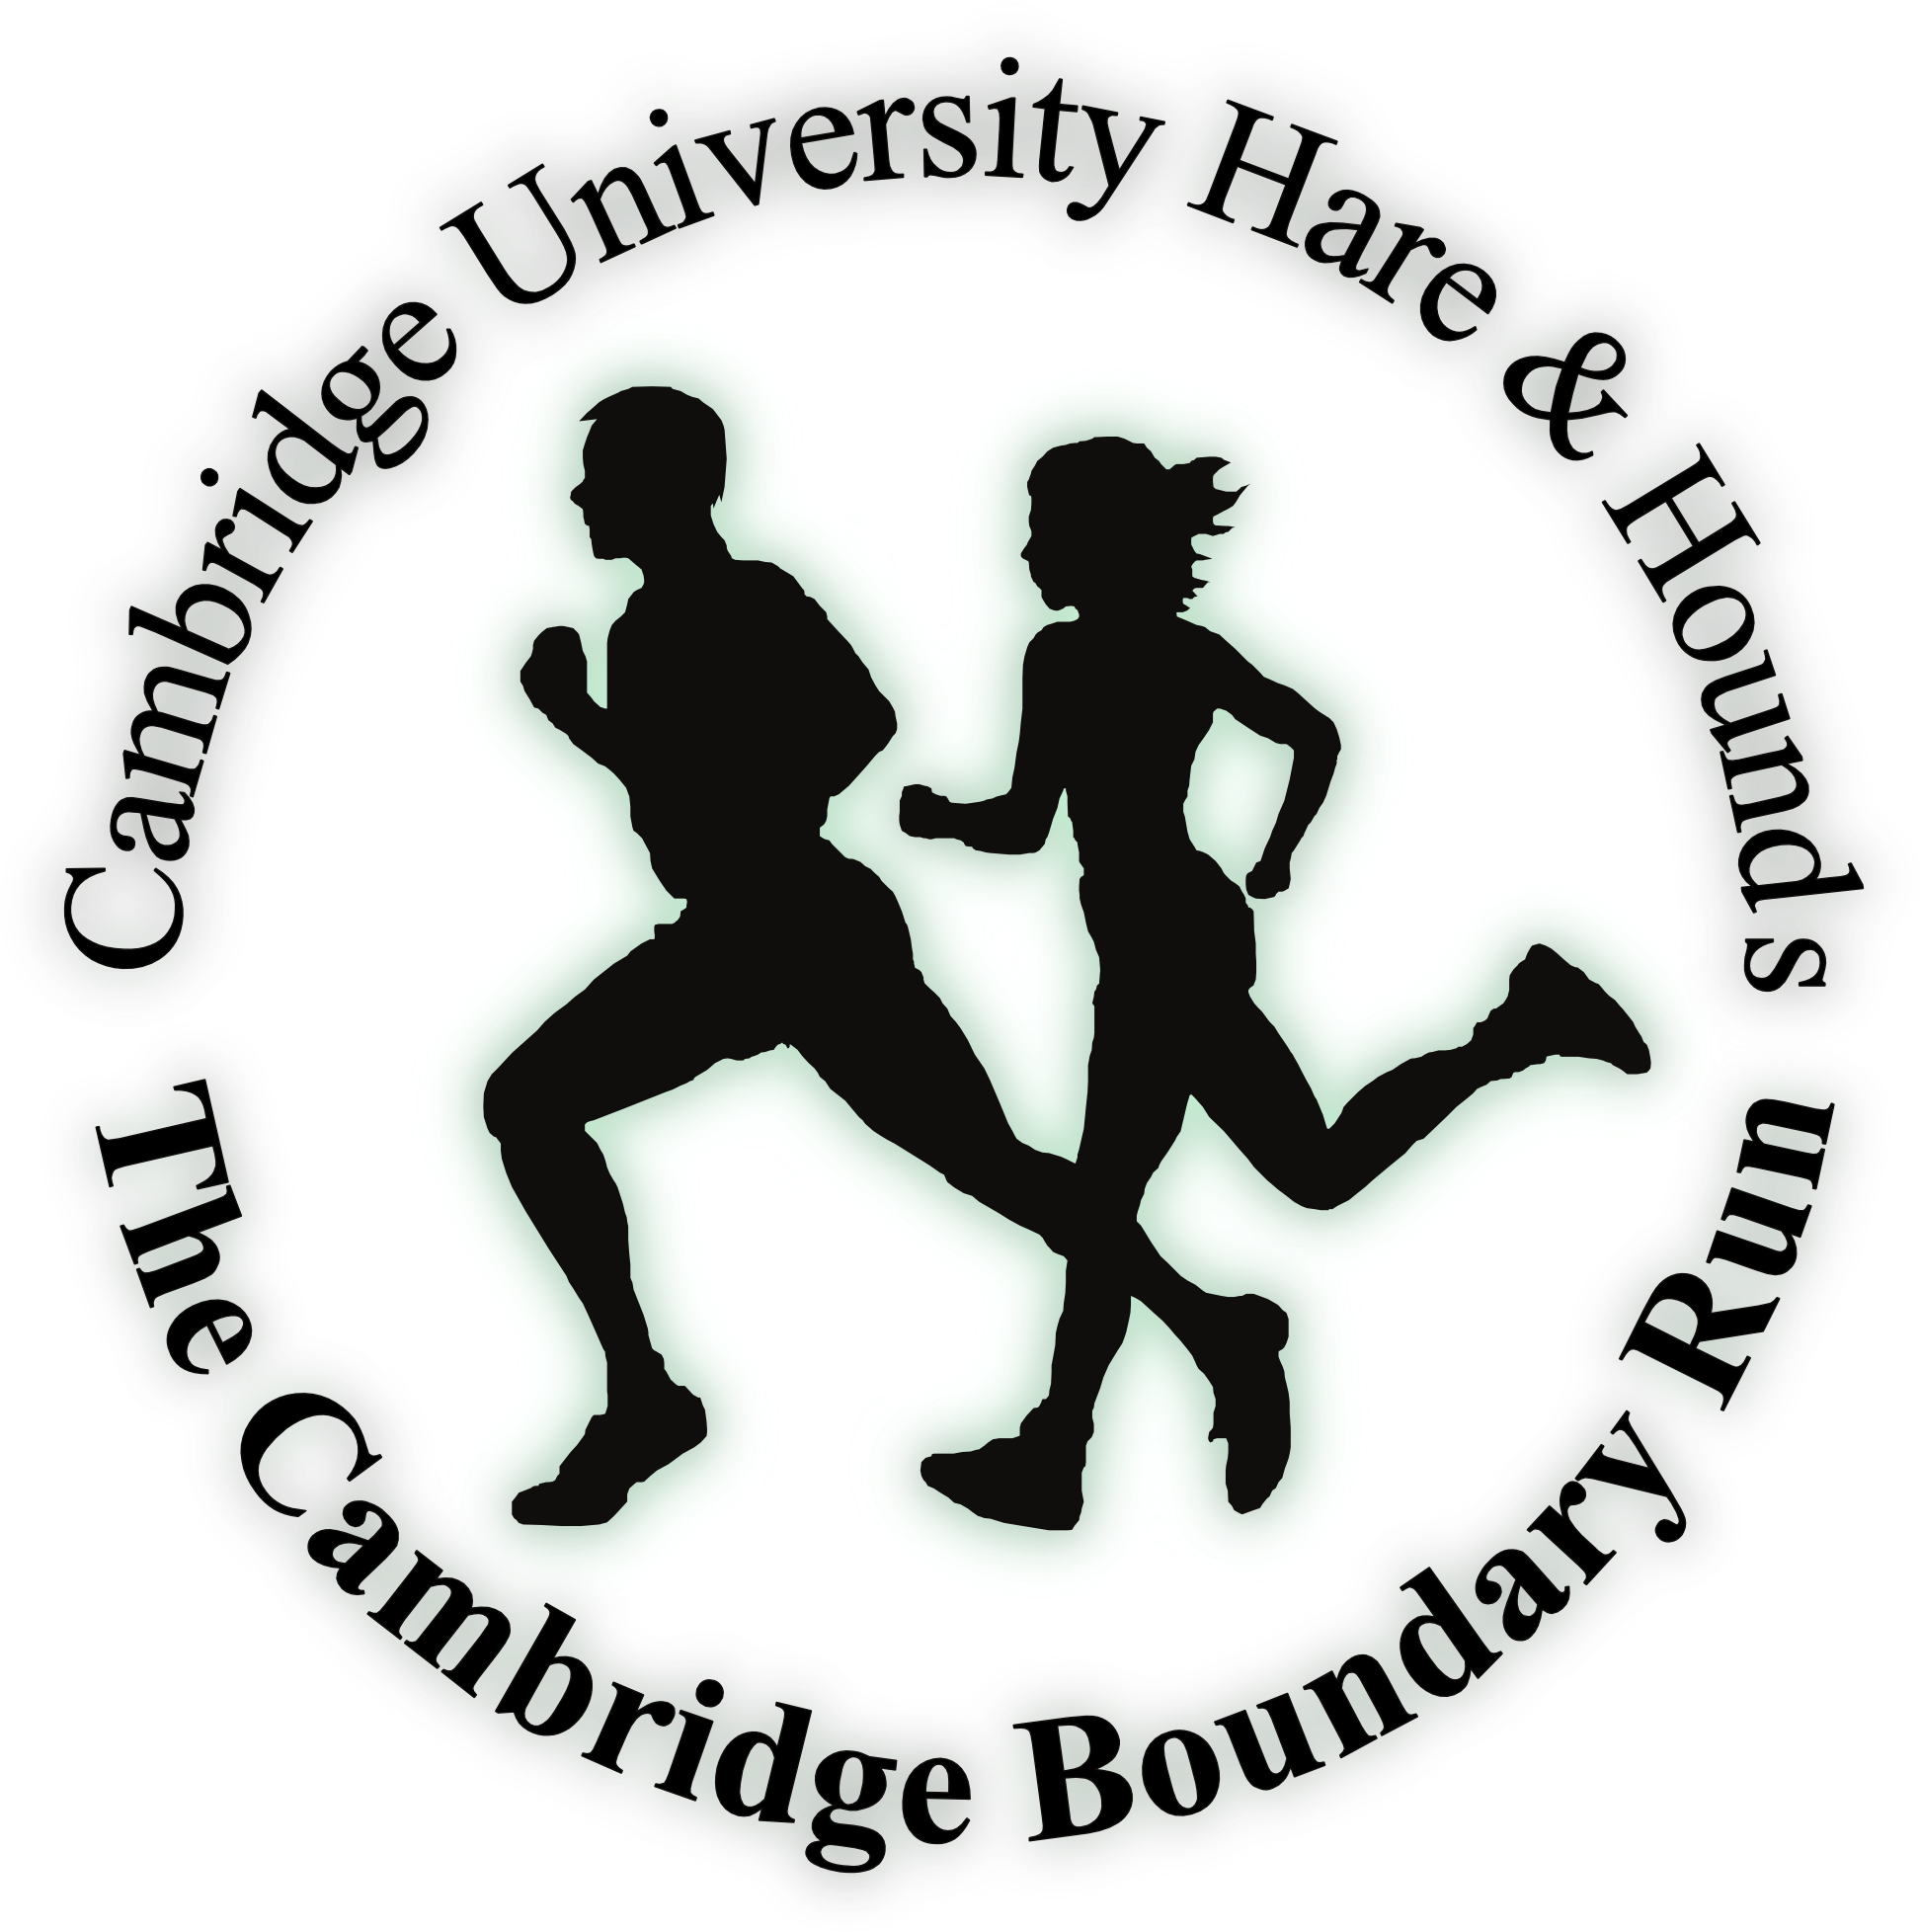 Cross country logo png. Download images for running